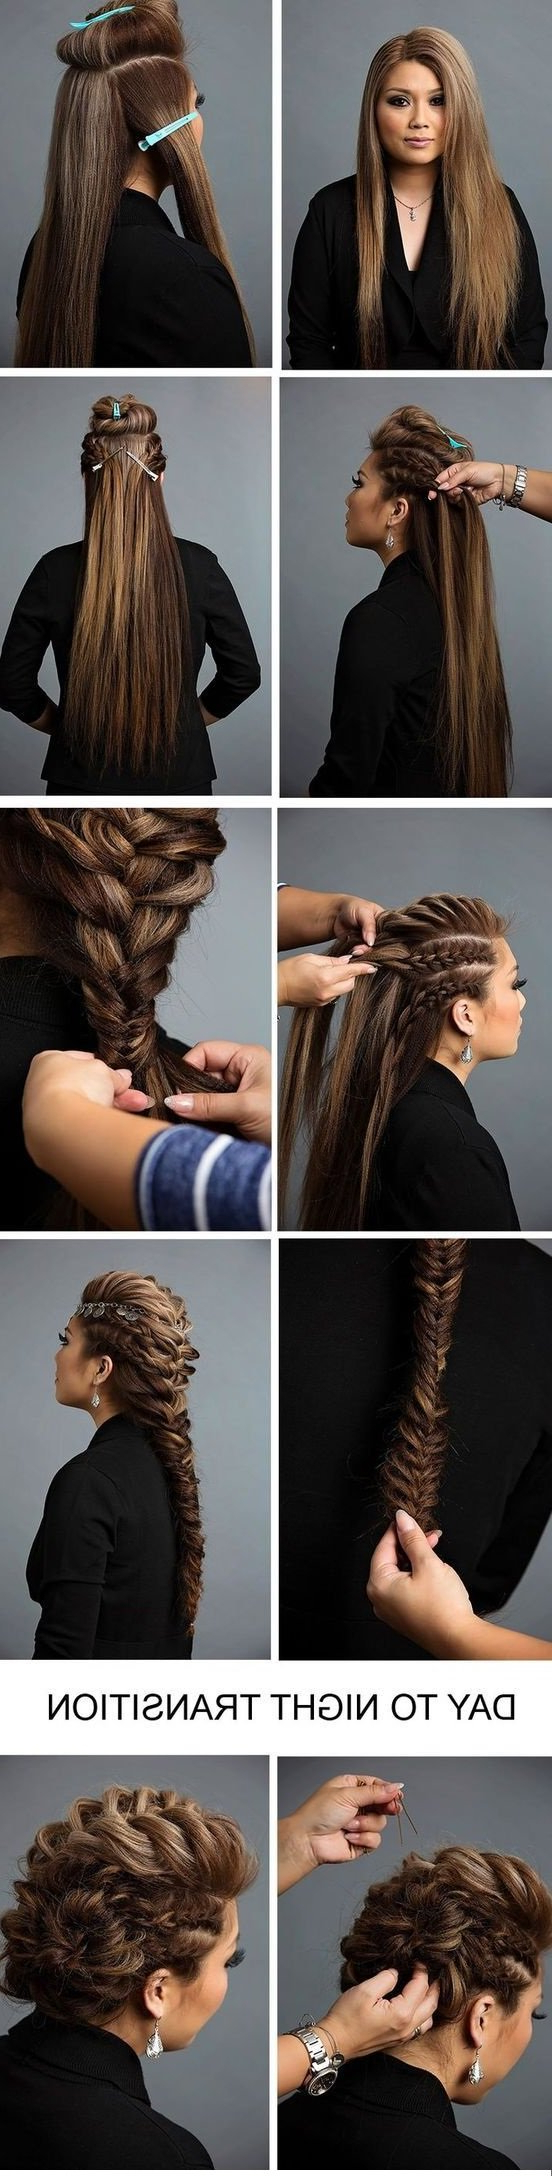 17 Fabulous Faux Hawk Hairstyle Tutorials Within Preferred Messy Fishtail Faux Hawk Hairstyles (View 10 of 20)